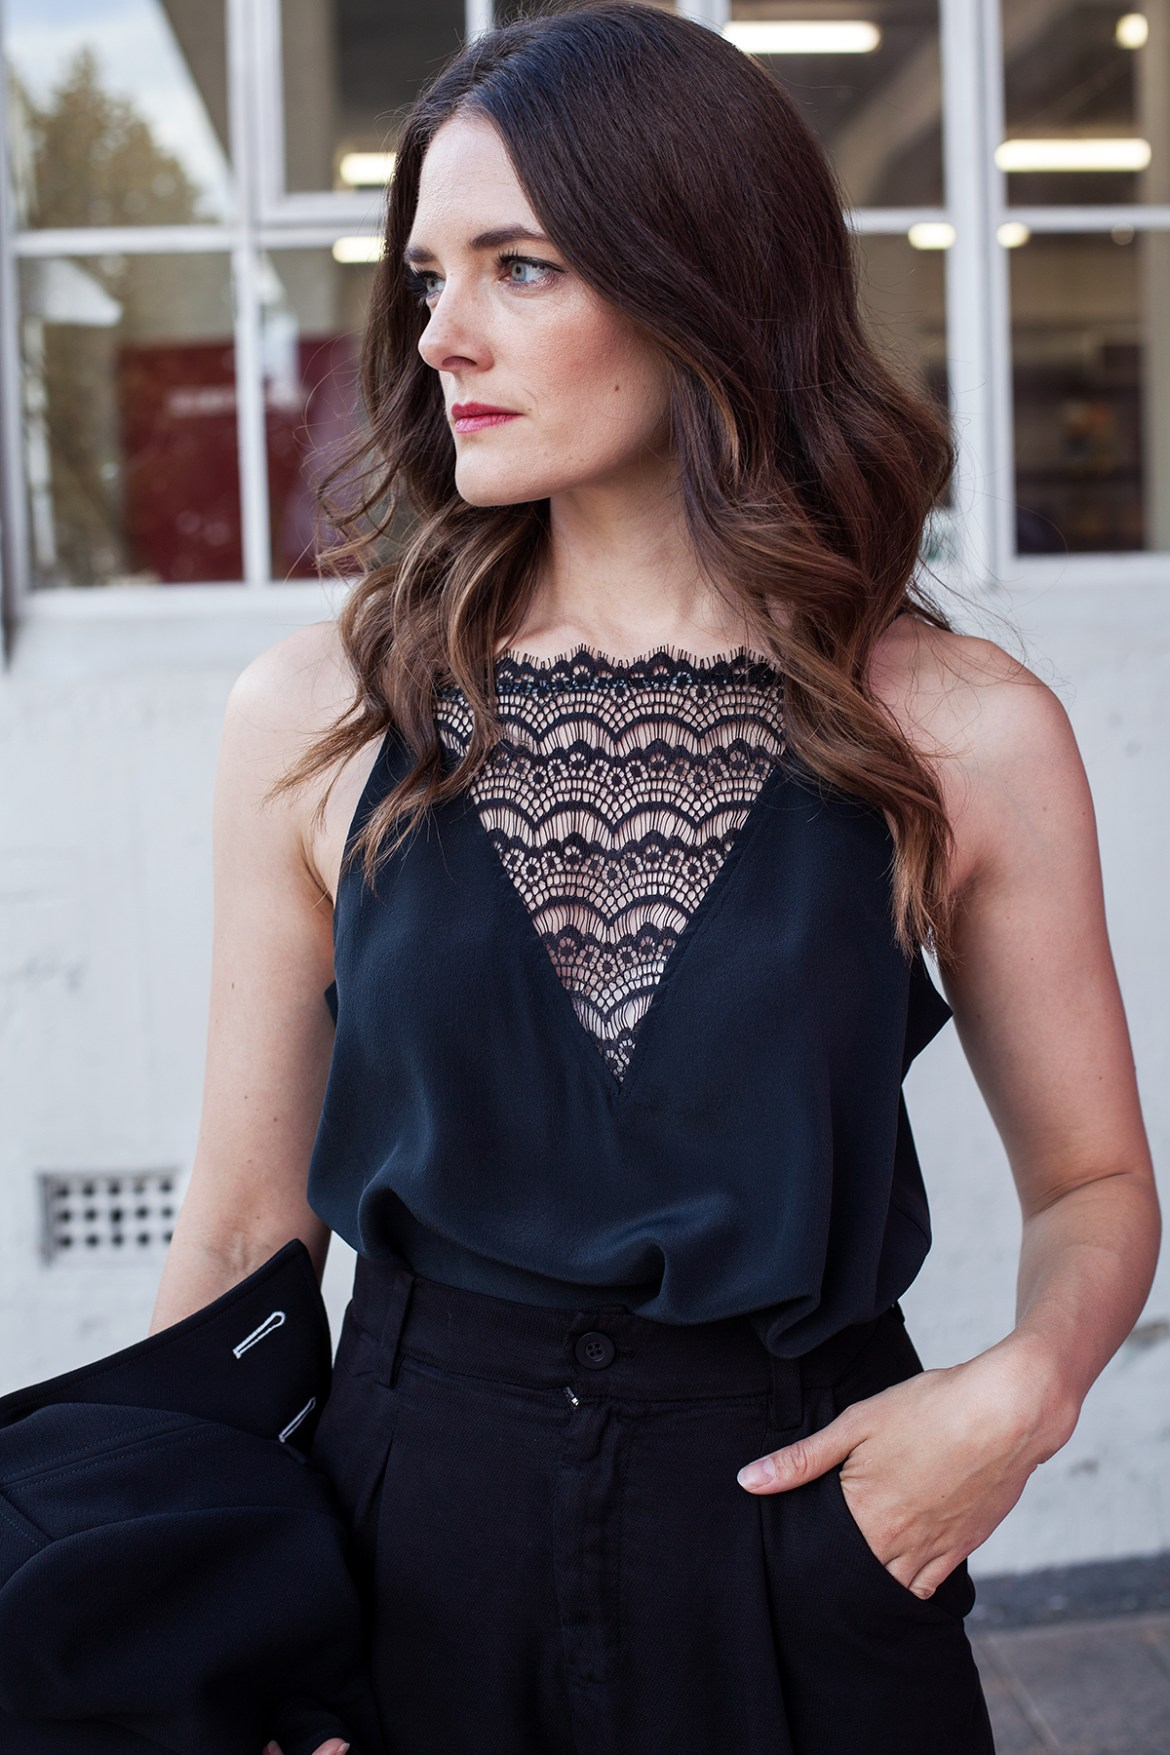 lace detail camisole worn by Jenelle Witty from Inspiring Wit, an Australian personal style blog. For City of Perth winter fashion at Periscope boutique